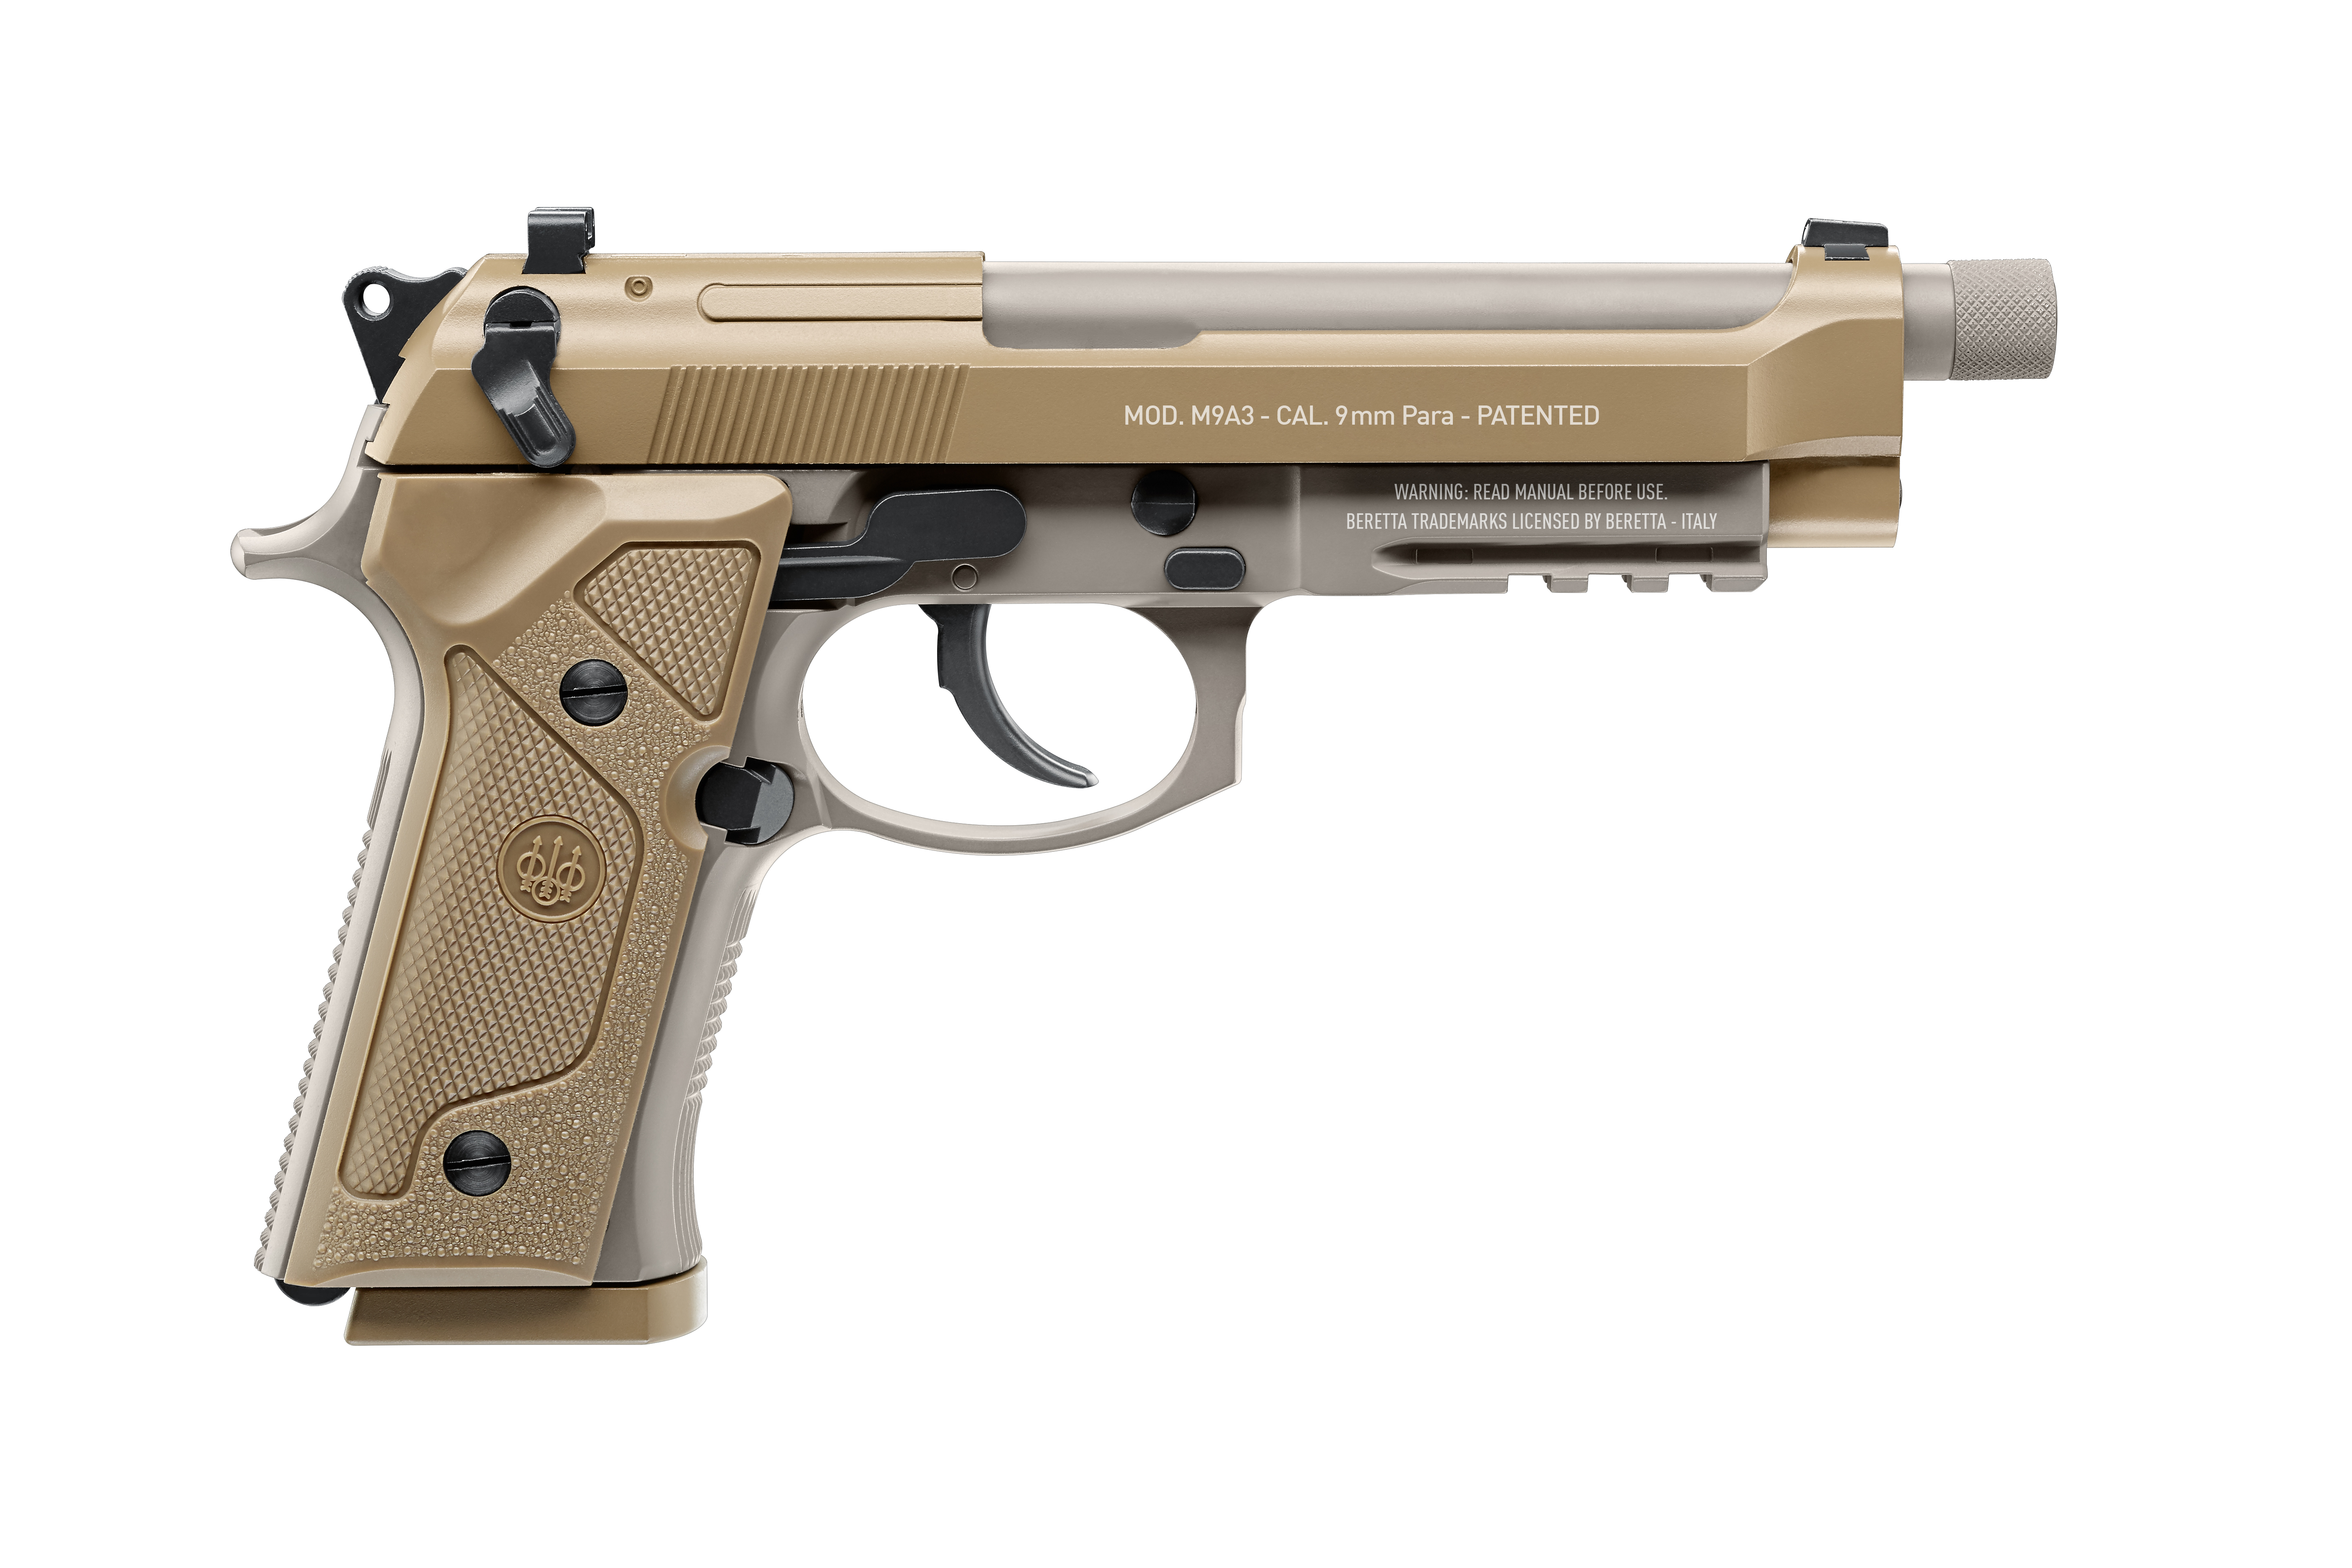 BERETTA (Umarex R) CO2 Airgun Replica MOD. M9A3